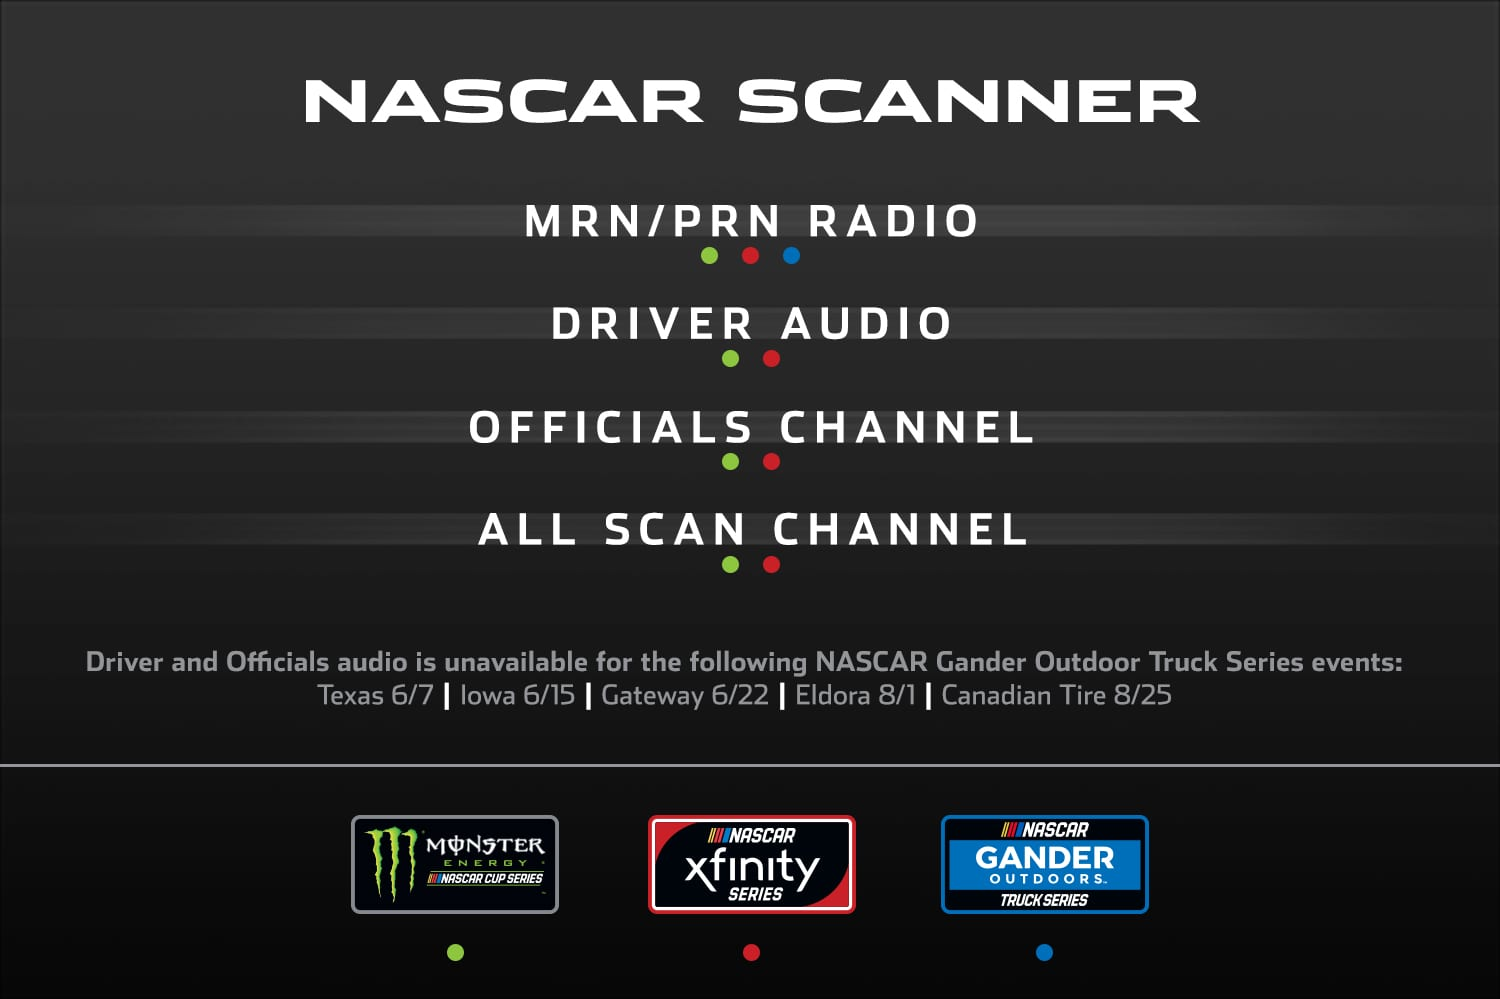 Scanner Sales Page | Official Site Of NASCAR